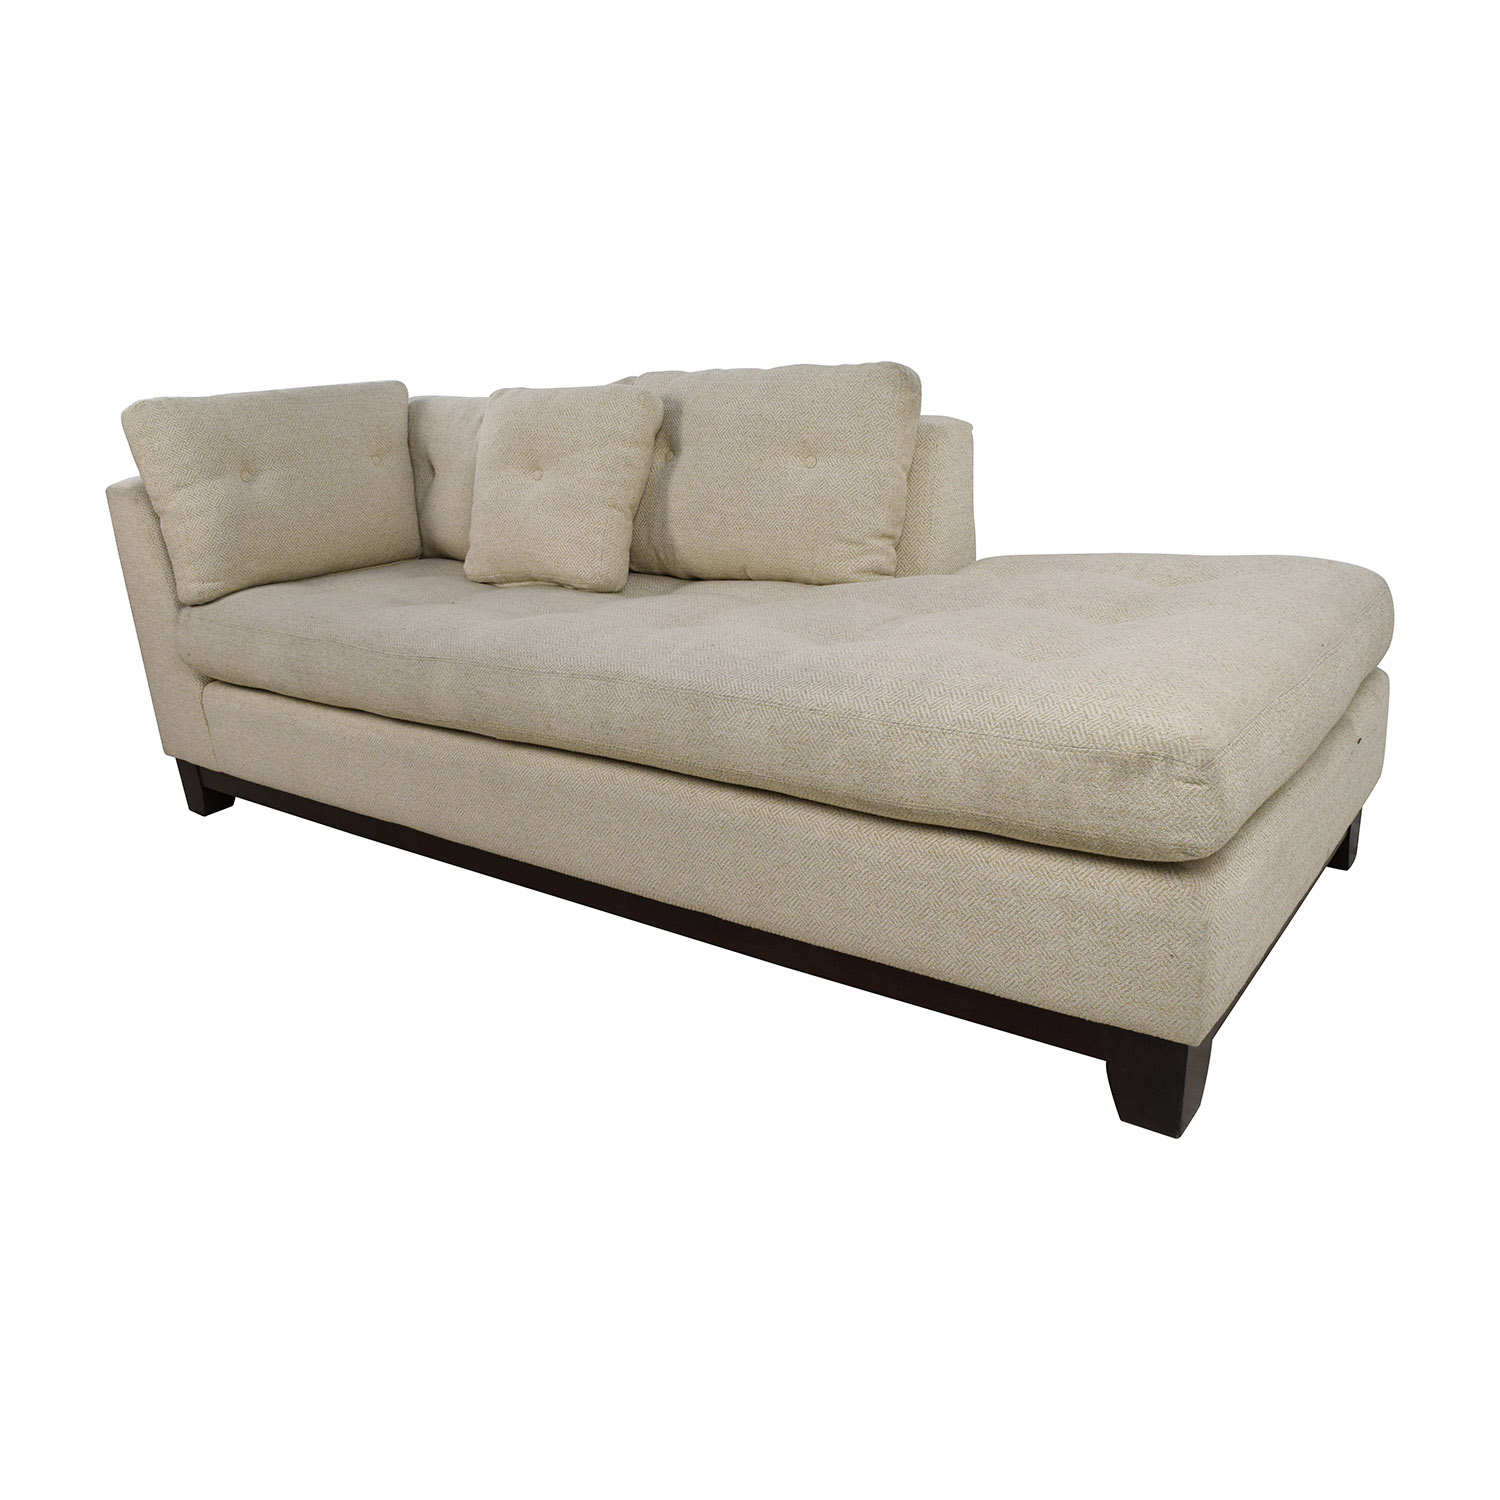 New 28 Chaise Sofa Wholesale Interiors Leather Sofa With Chaise Brown 625 M9805 Sofa Chaise